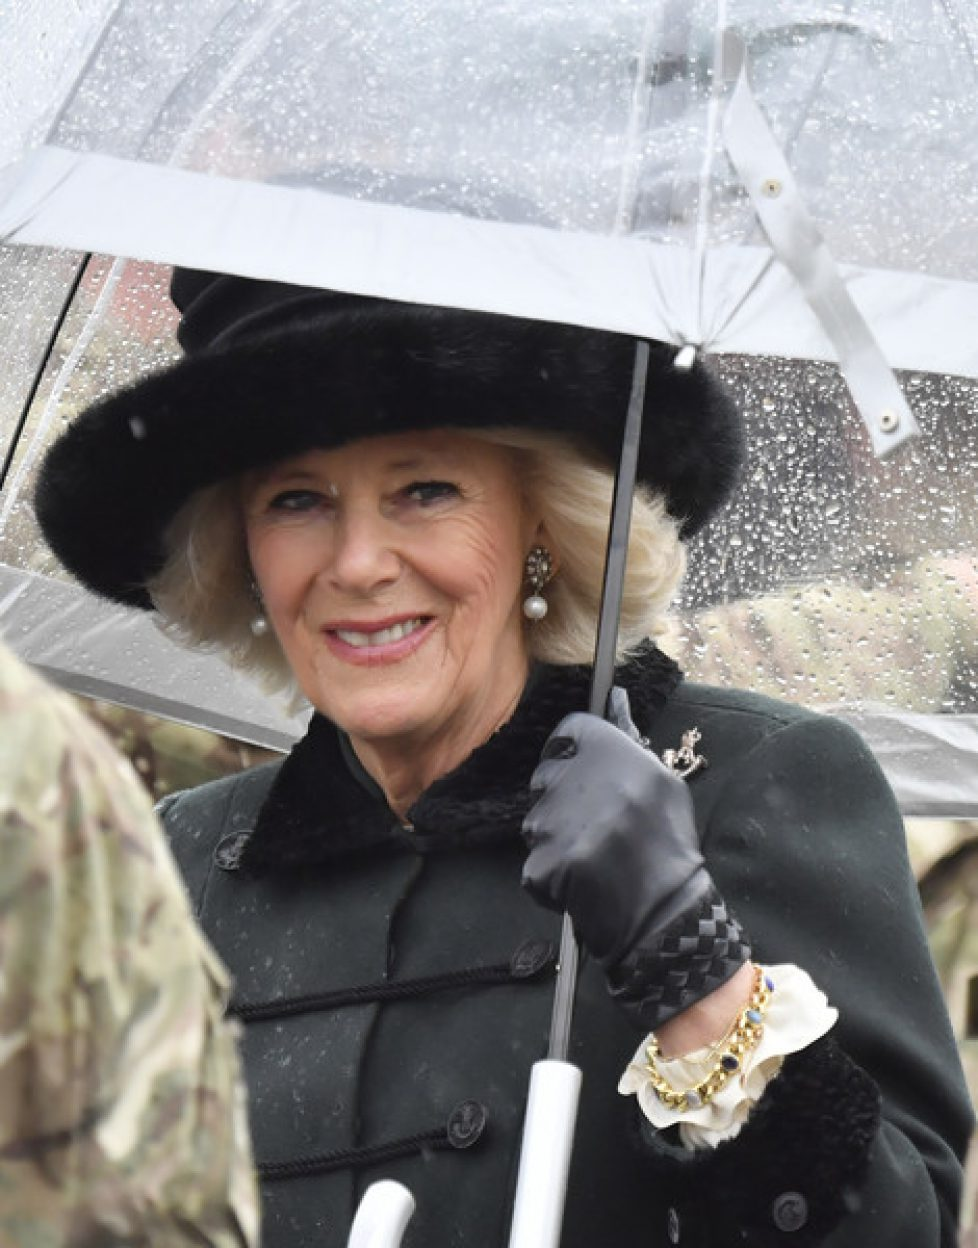 Duchess+Cornwall+Visits+4th+Battalion+Rifles+fllkXEsG07wl